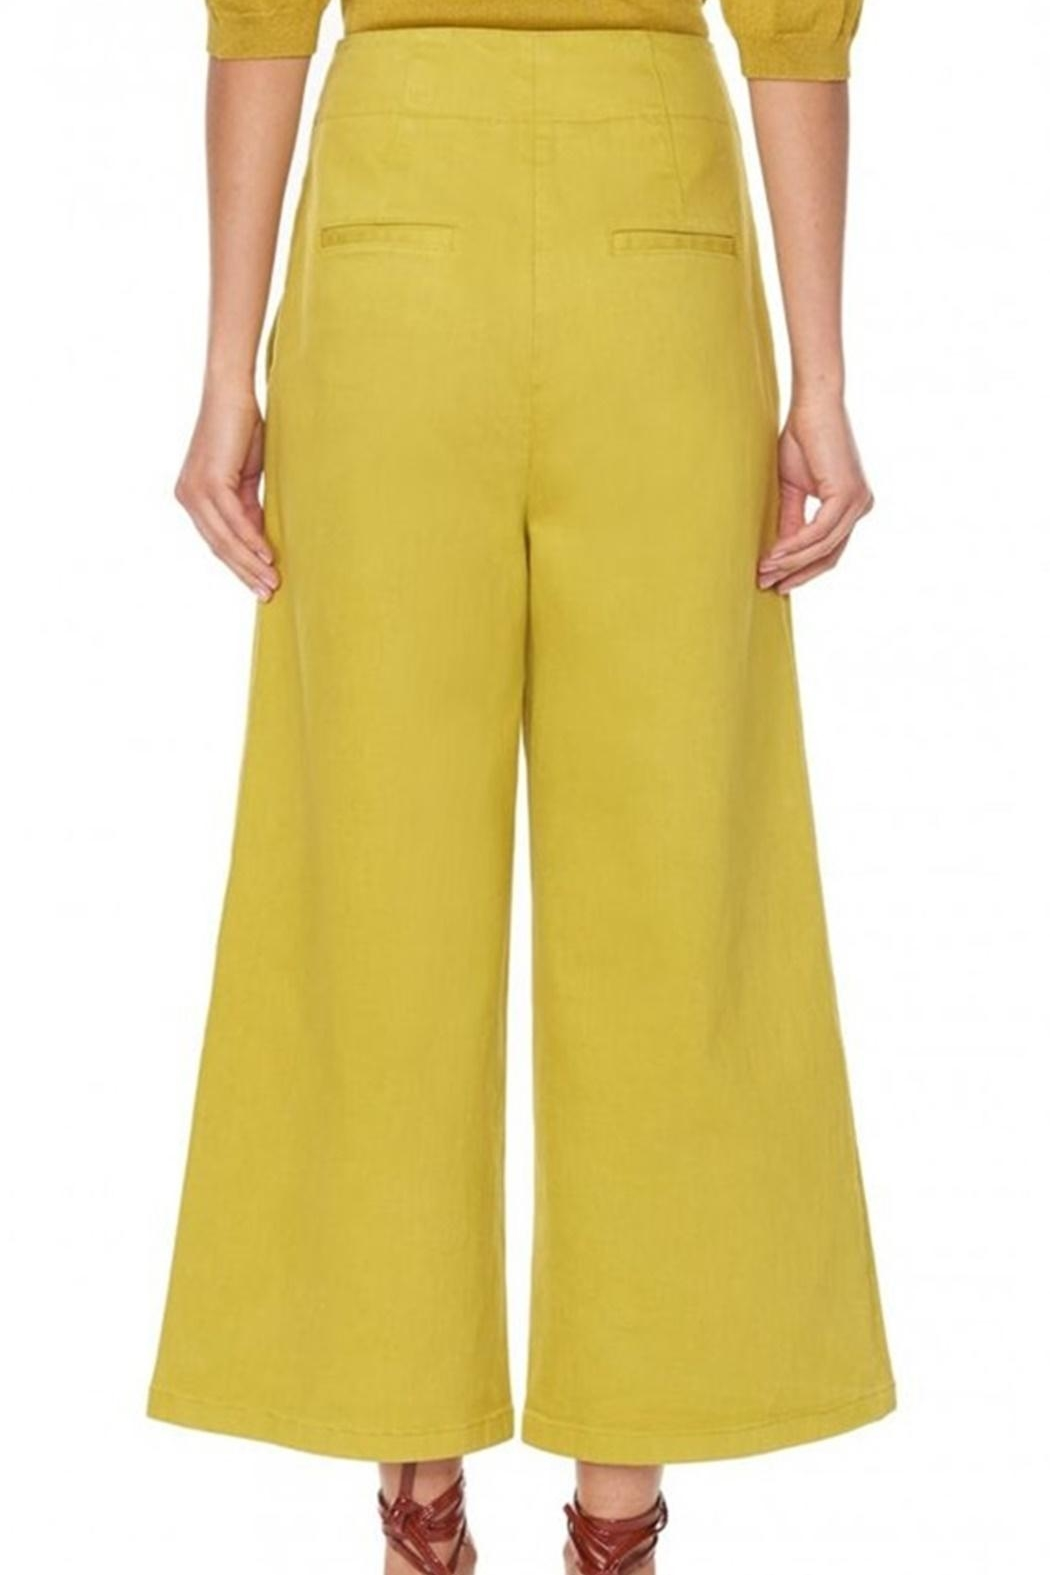 Tibi Garment Dyed Jean - Back Cropped Image